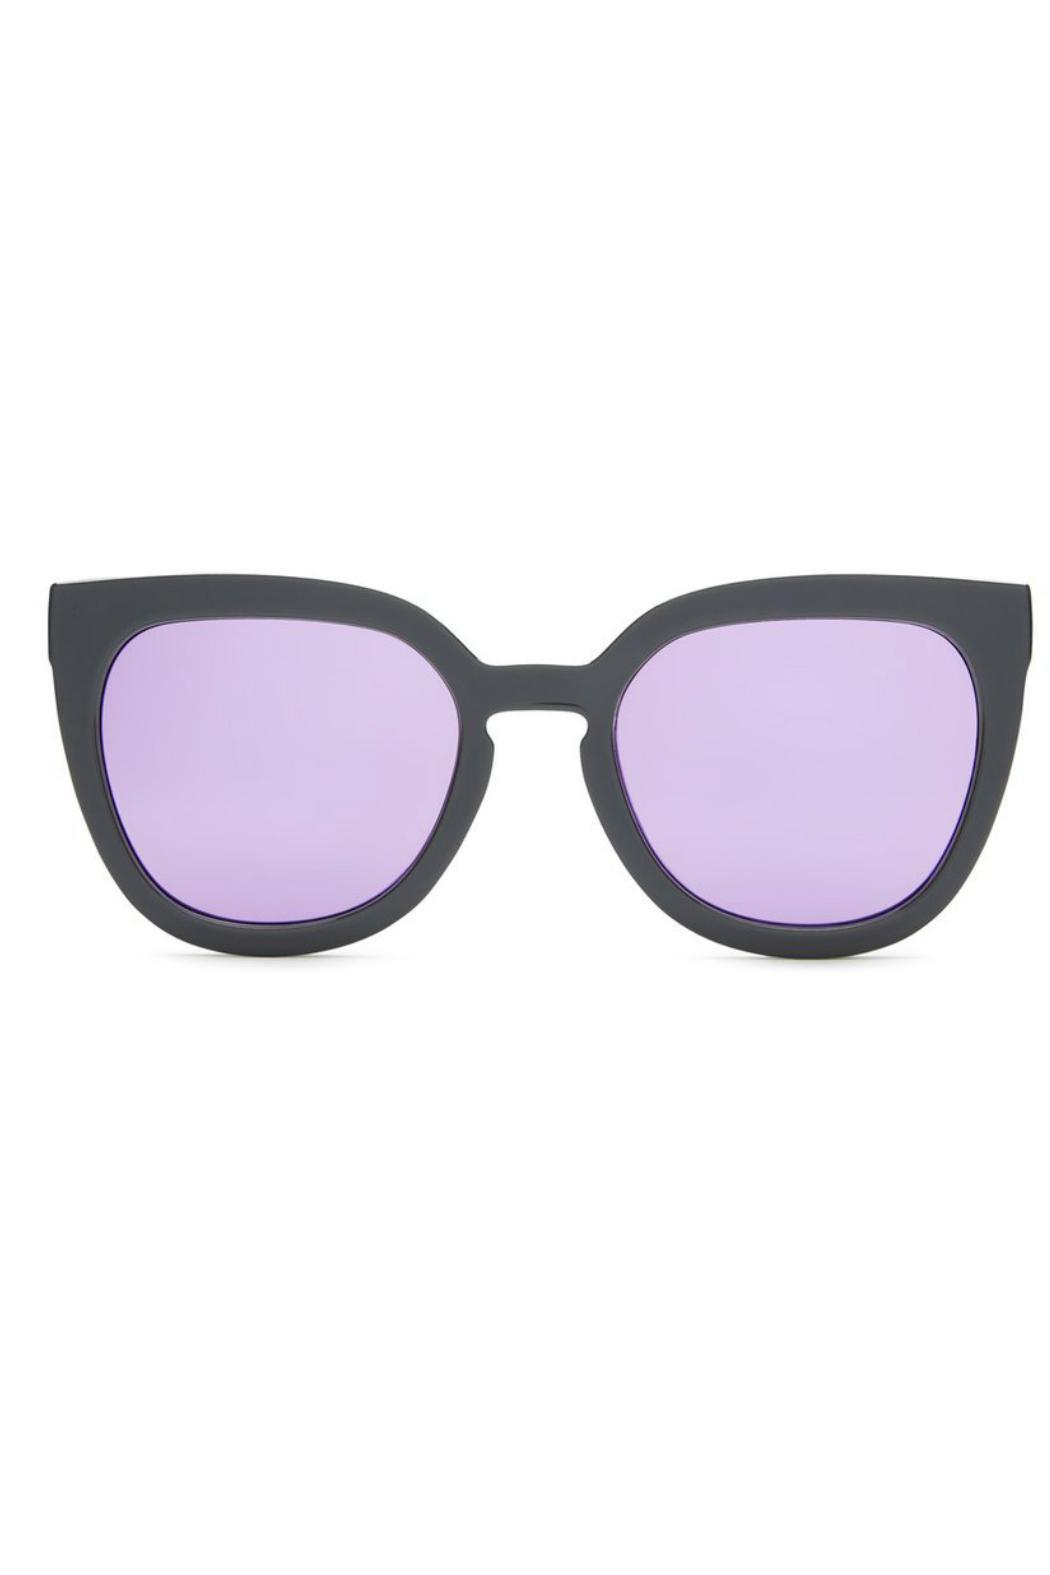 c88c1fbf81222 Quay Australia Noosa Sunnies from Texas by POE and Arrows — Shoptiques